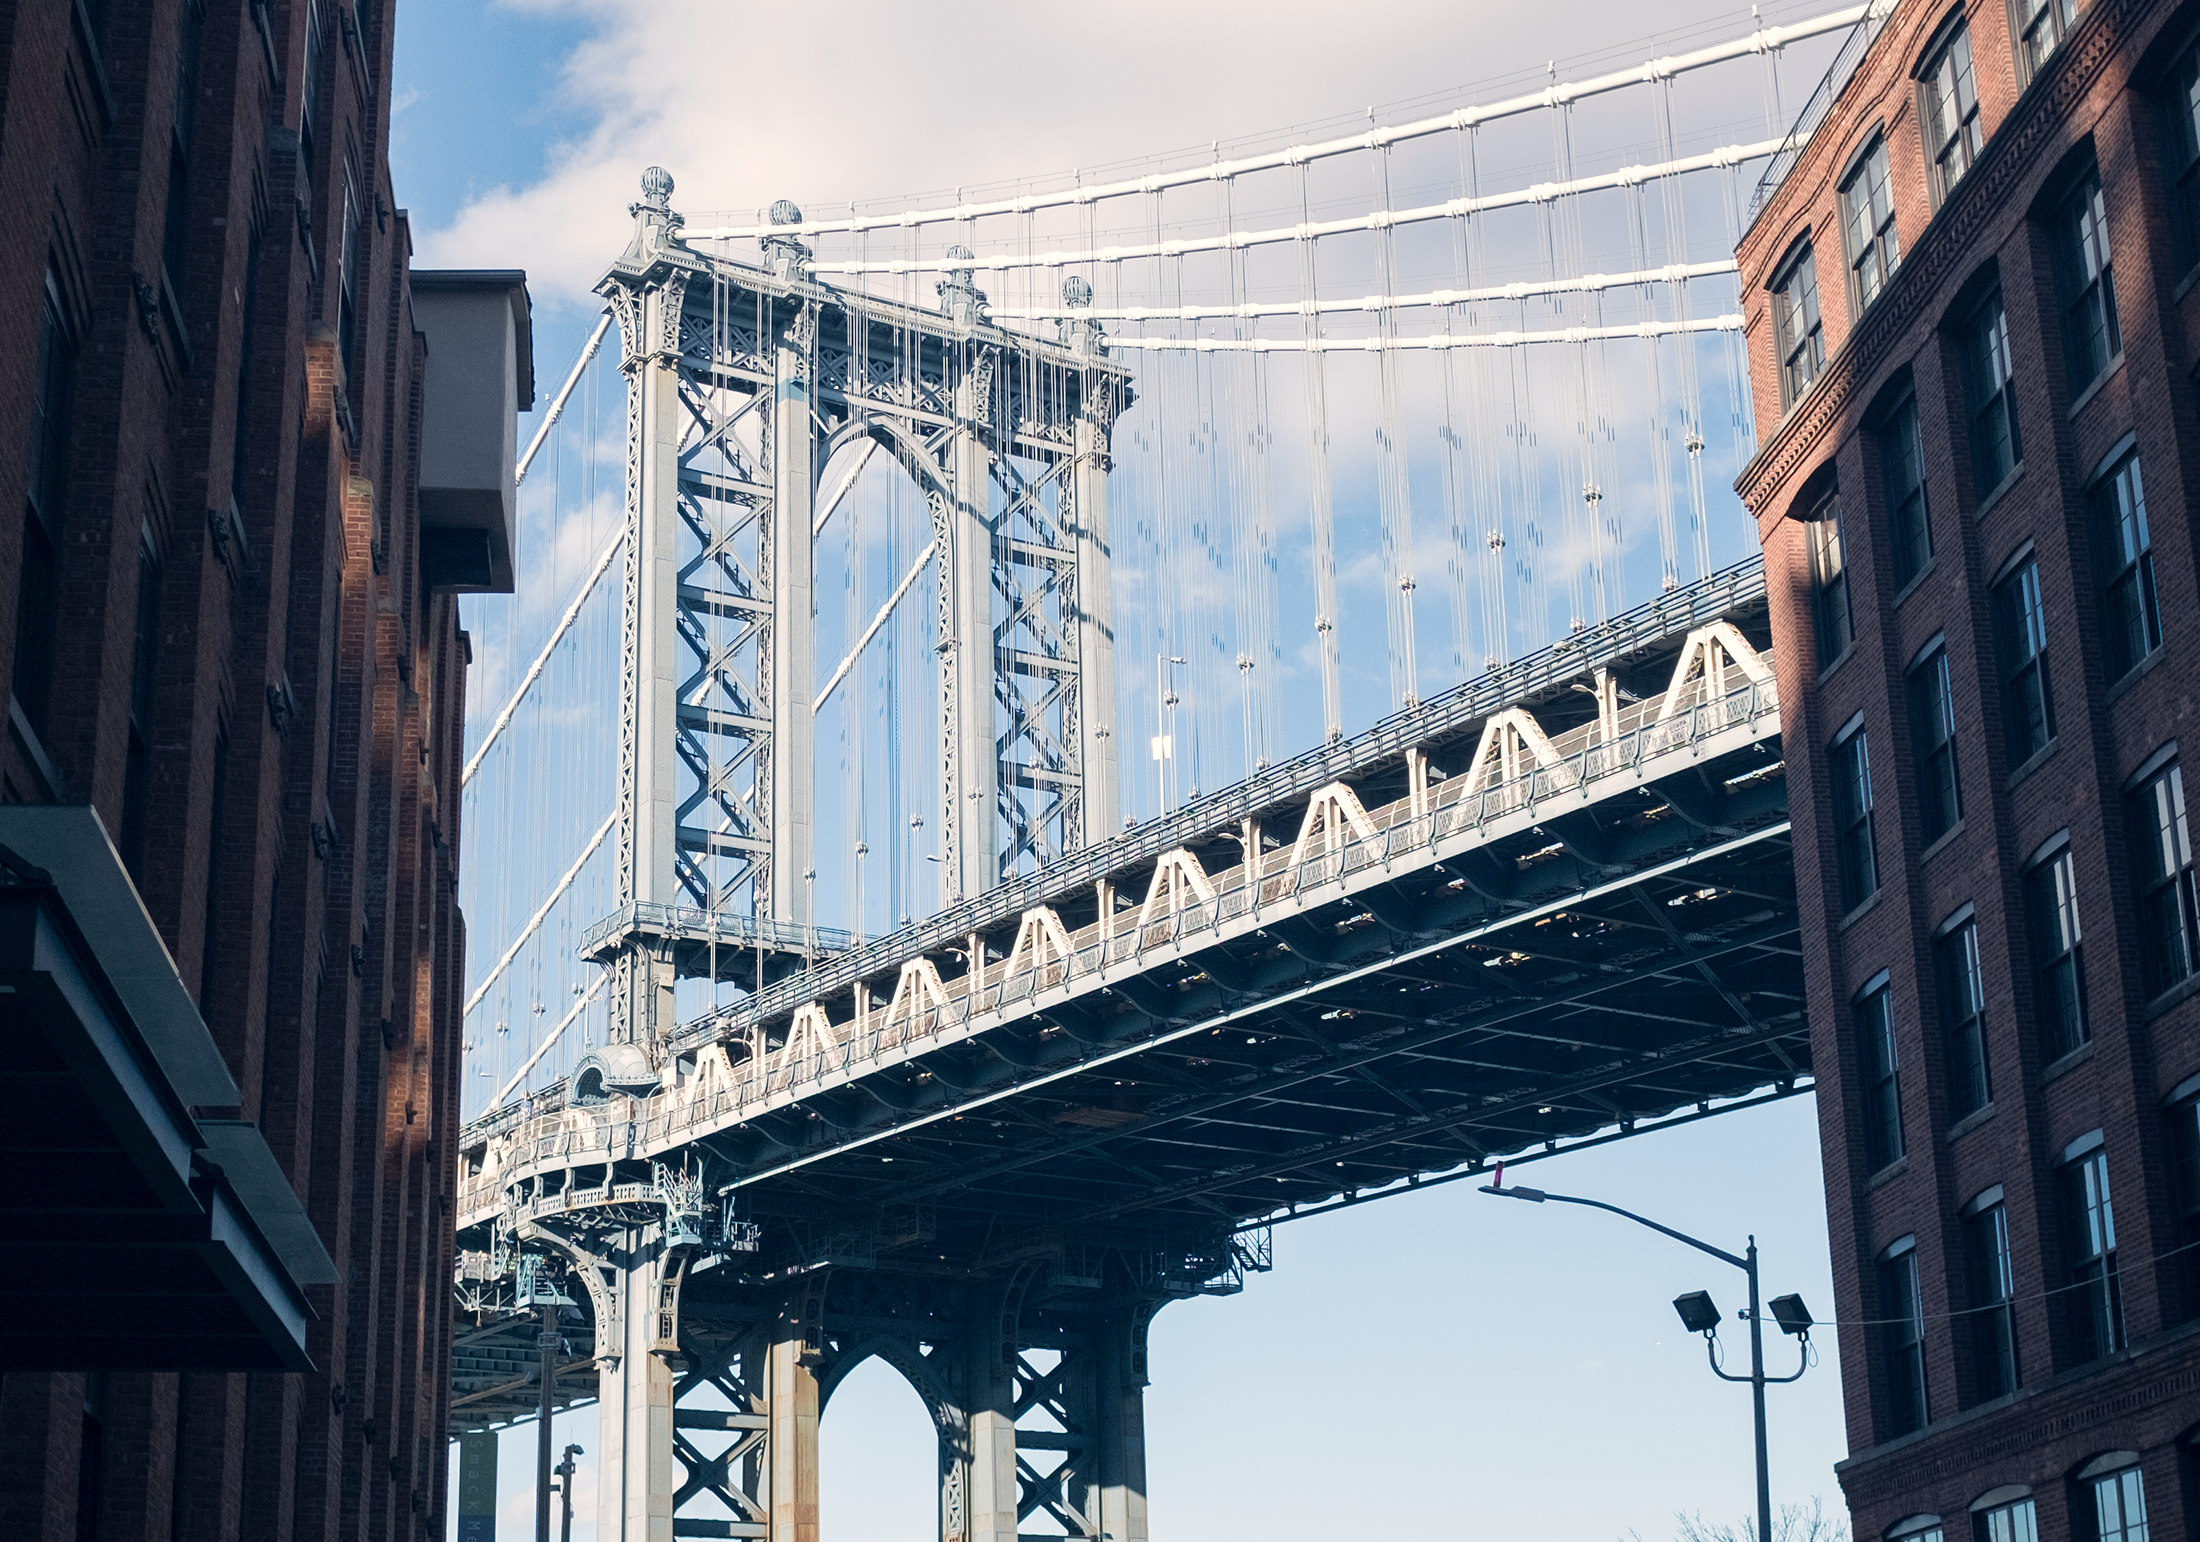 ManhattanBridge_Closeup-HoboLife